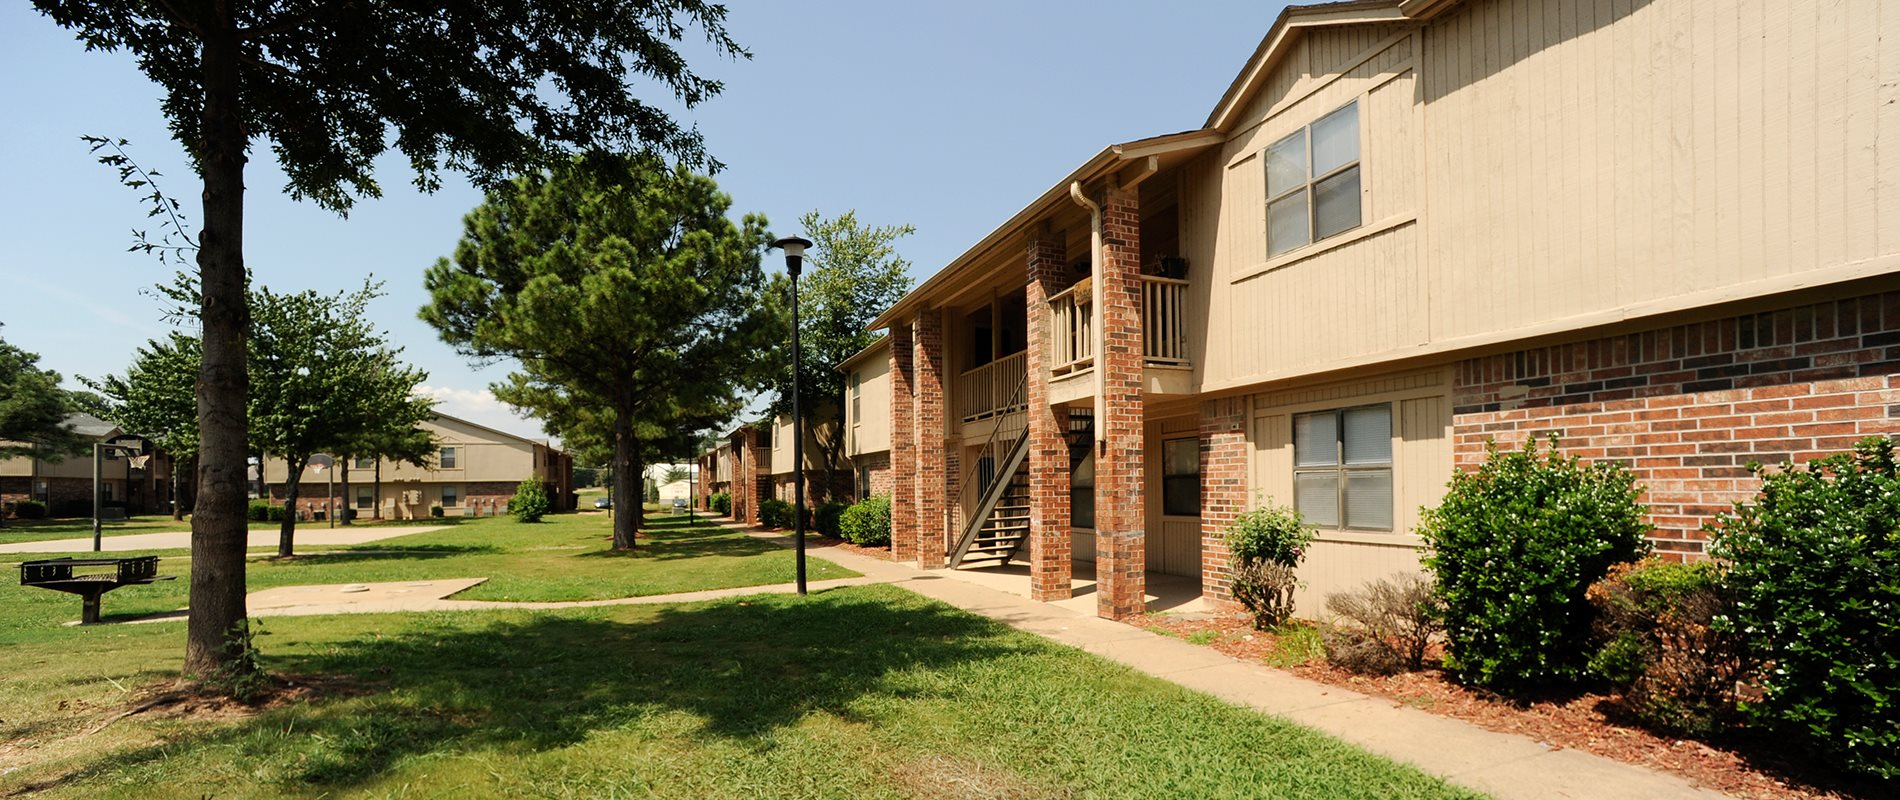 Searcy homepagegallery 1